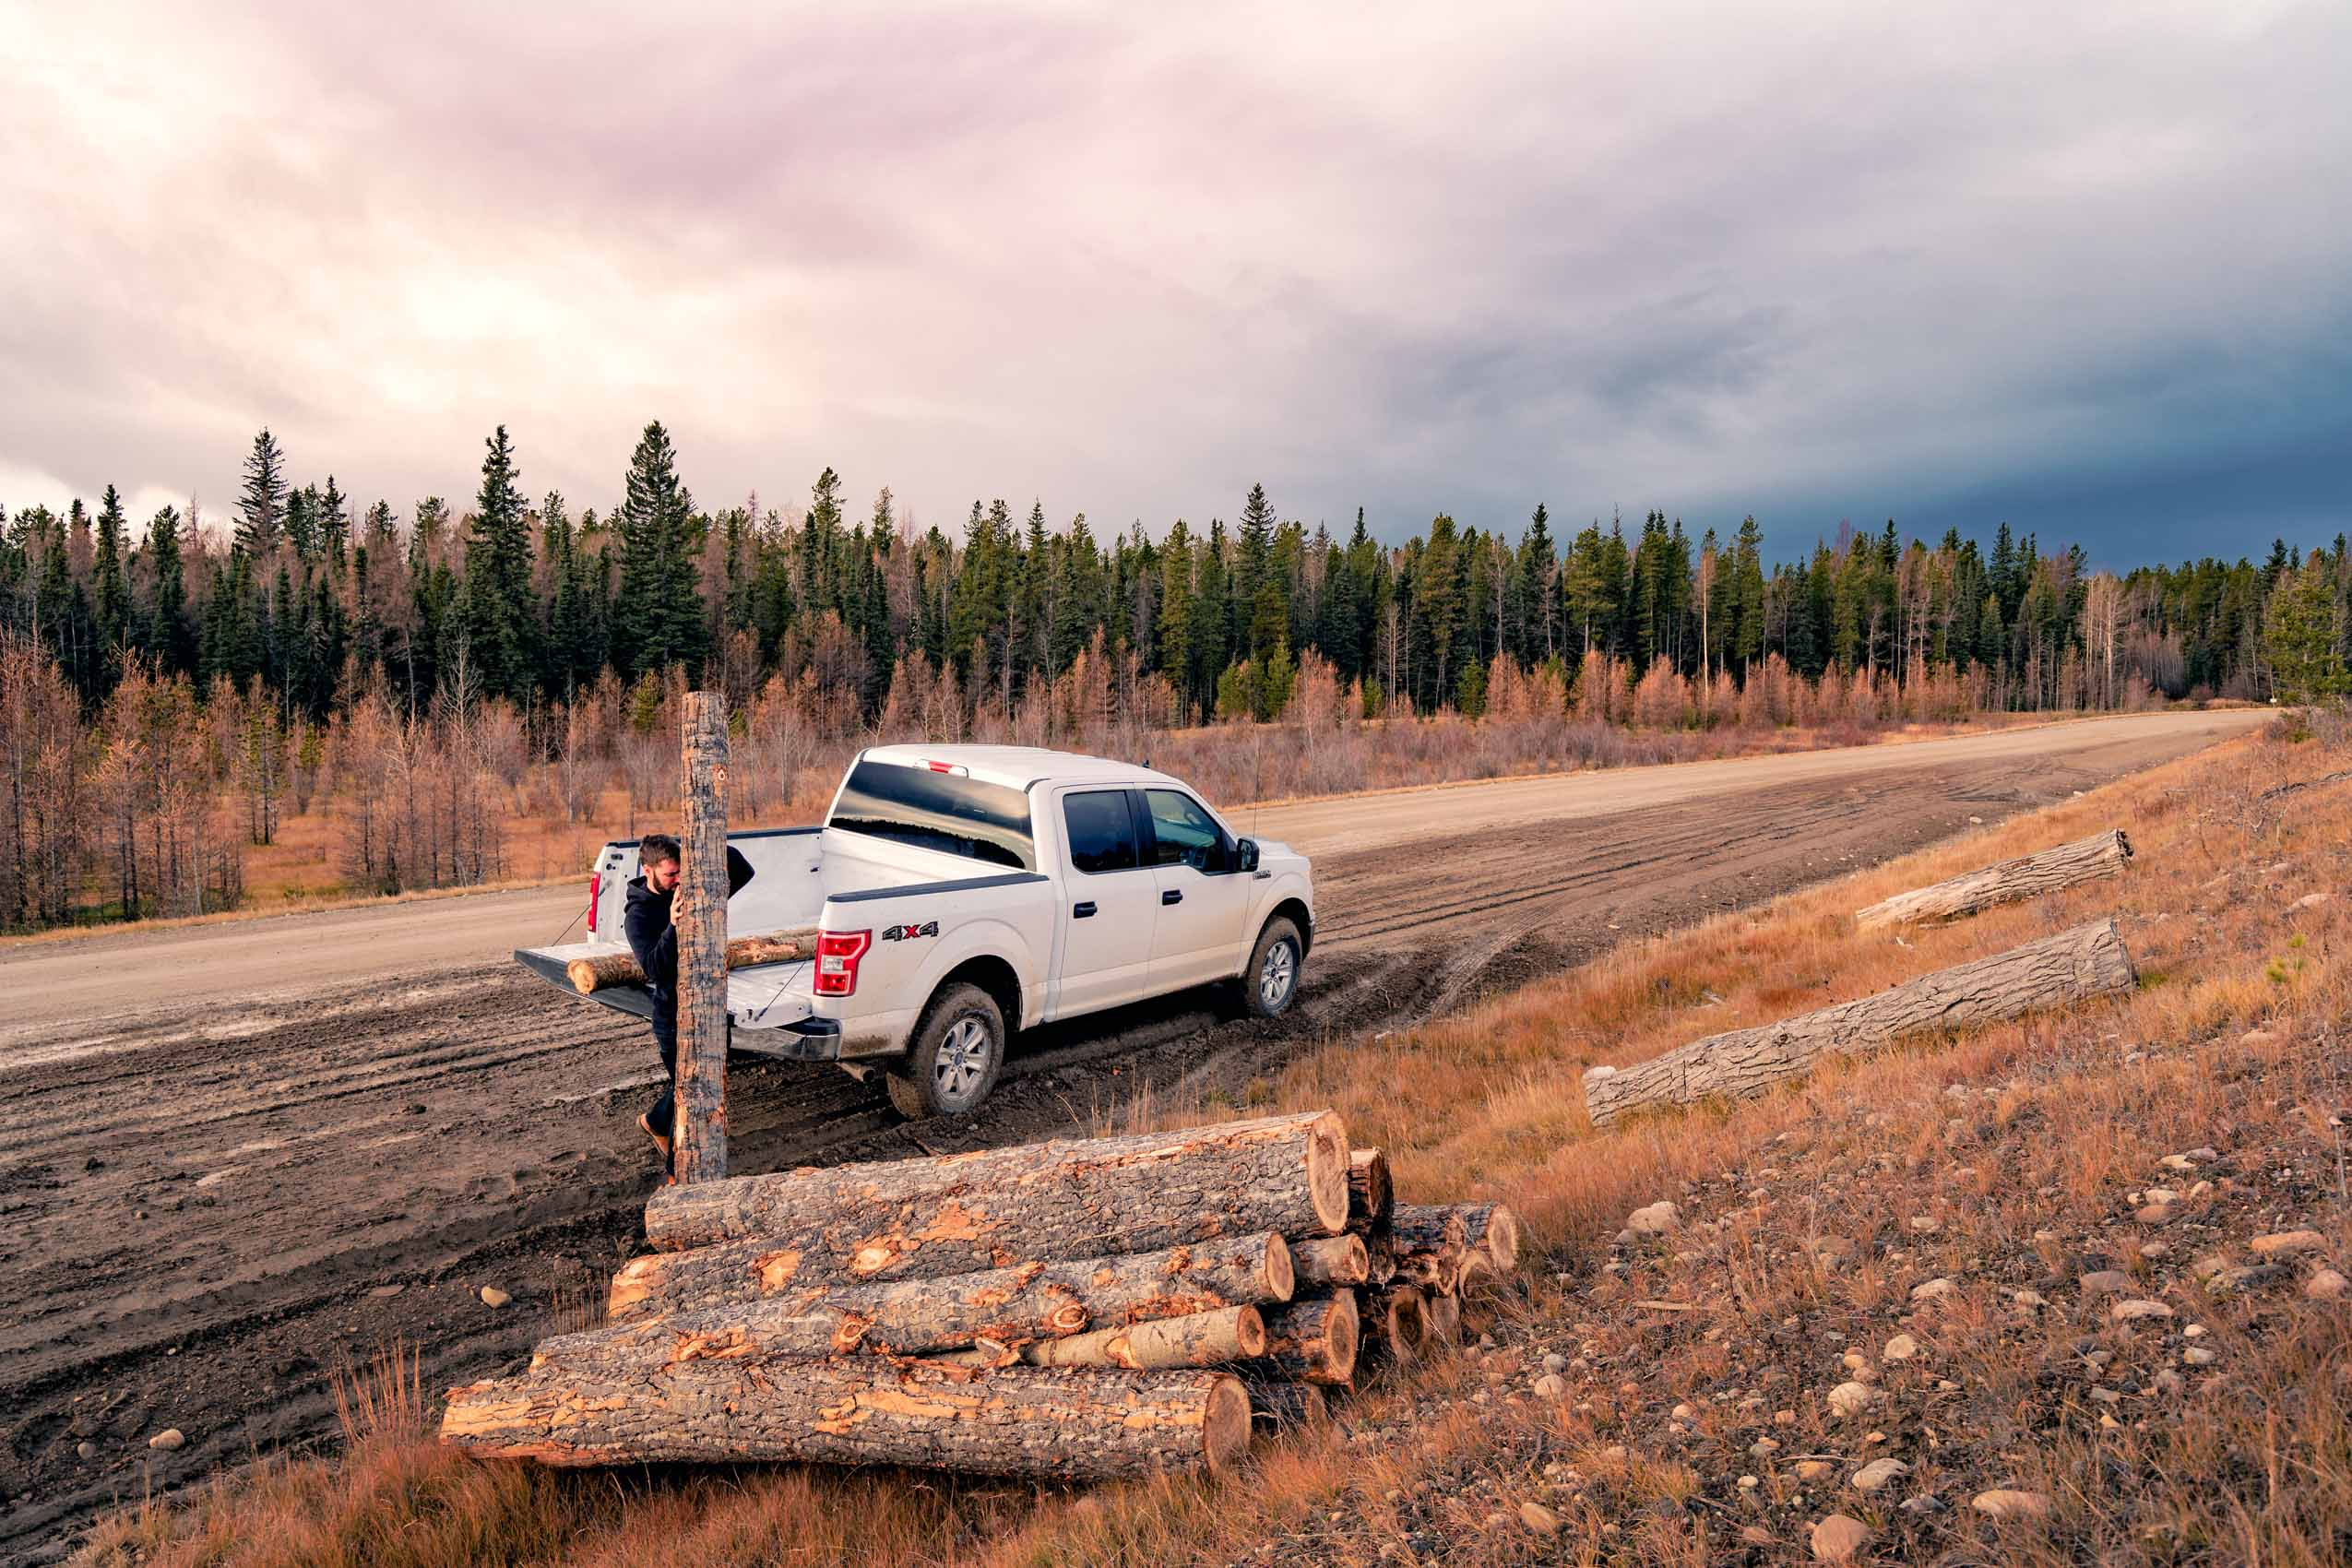 Ford F150 Ford Canada Karl Lee Alberta Car Photographer Automotive Photographer